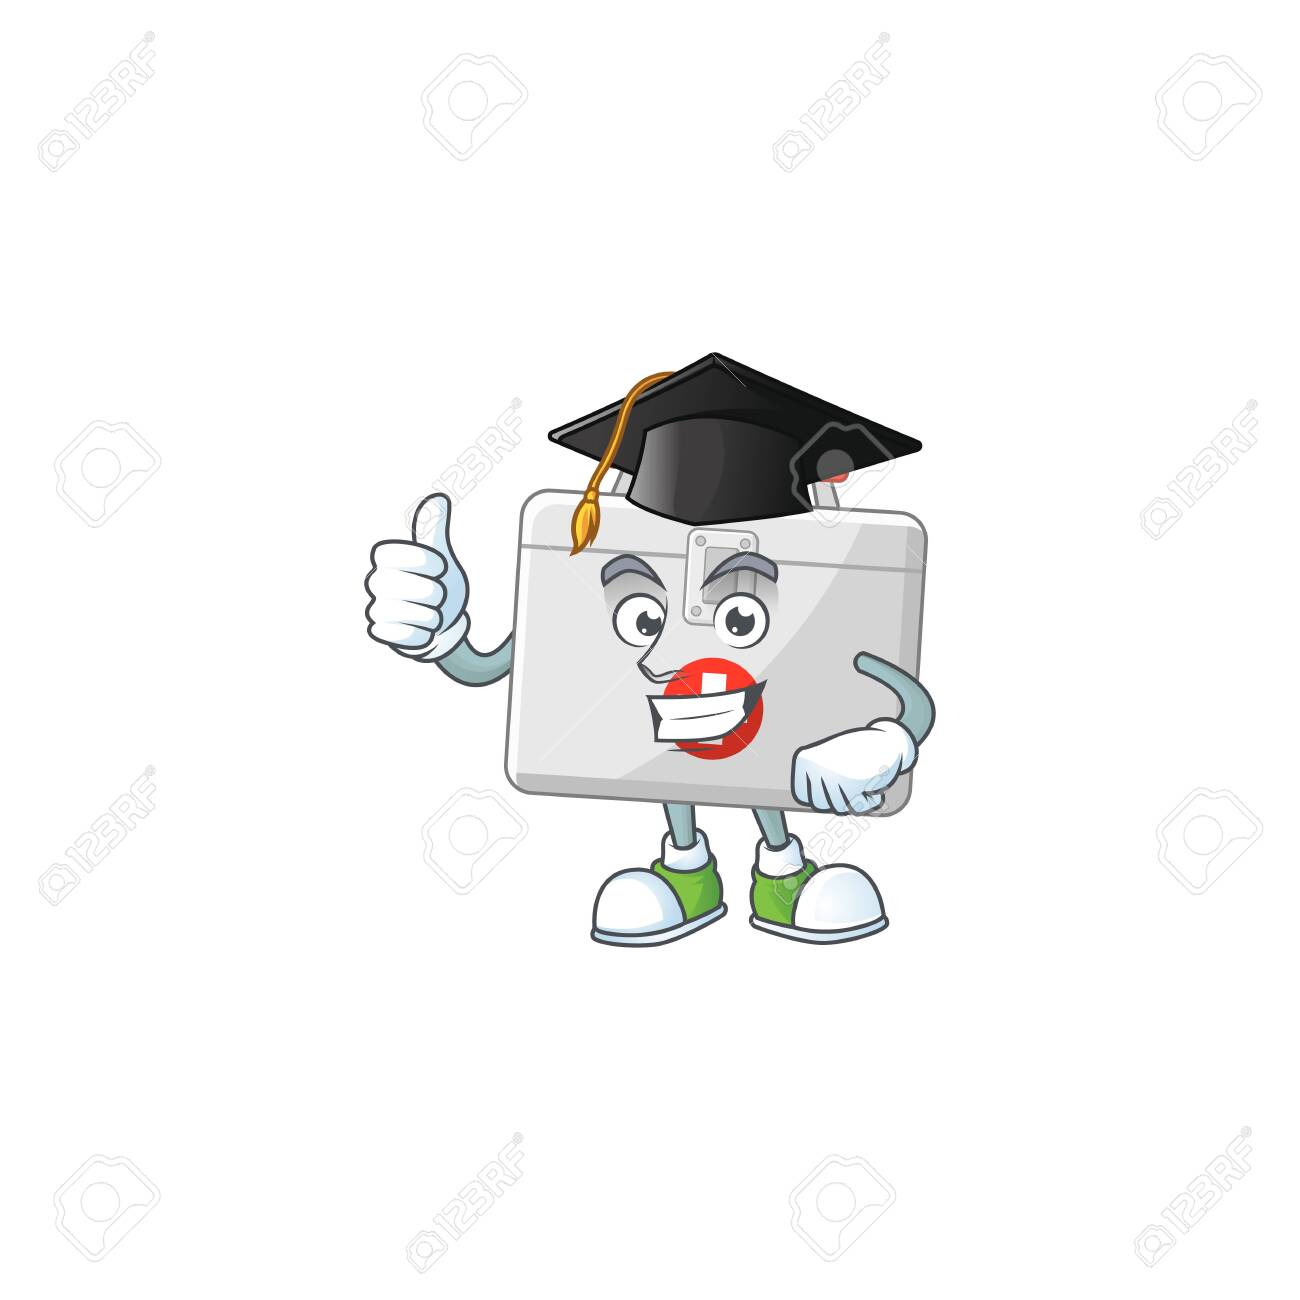 Mascot design concept of first aid kit proudly wearing a black Graduation hat. Vector illustration - 145225763